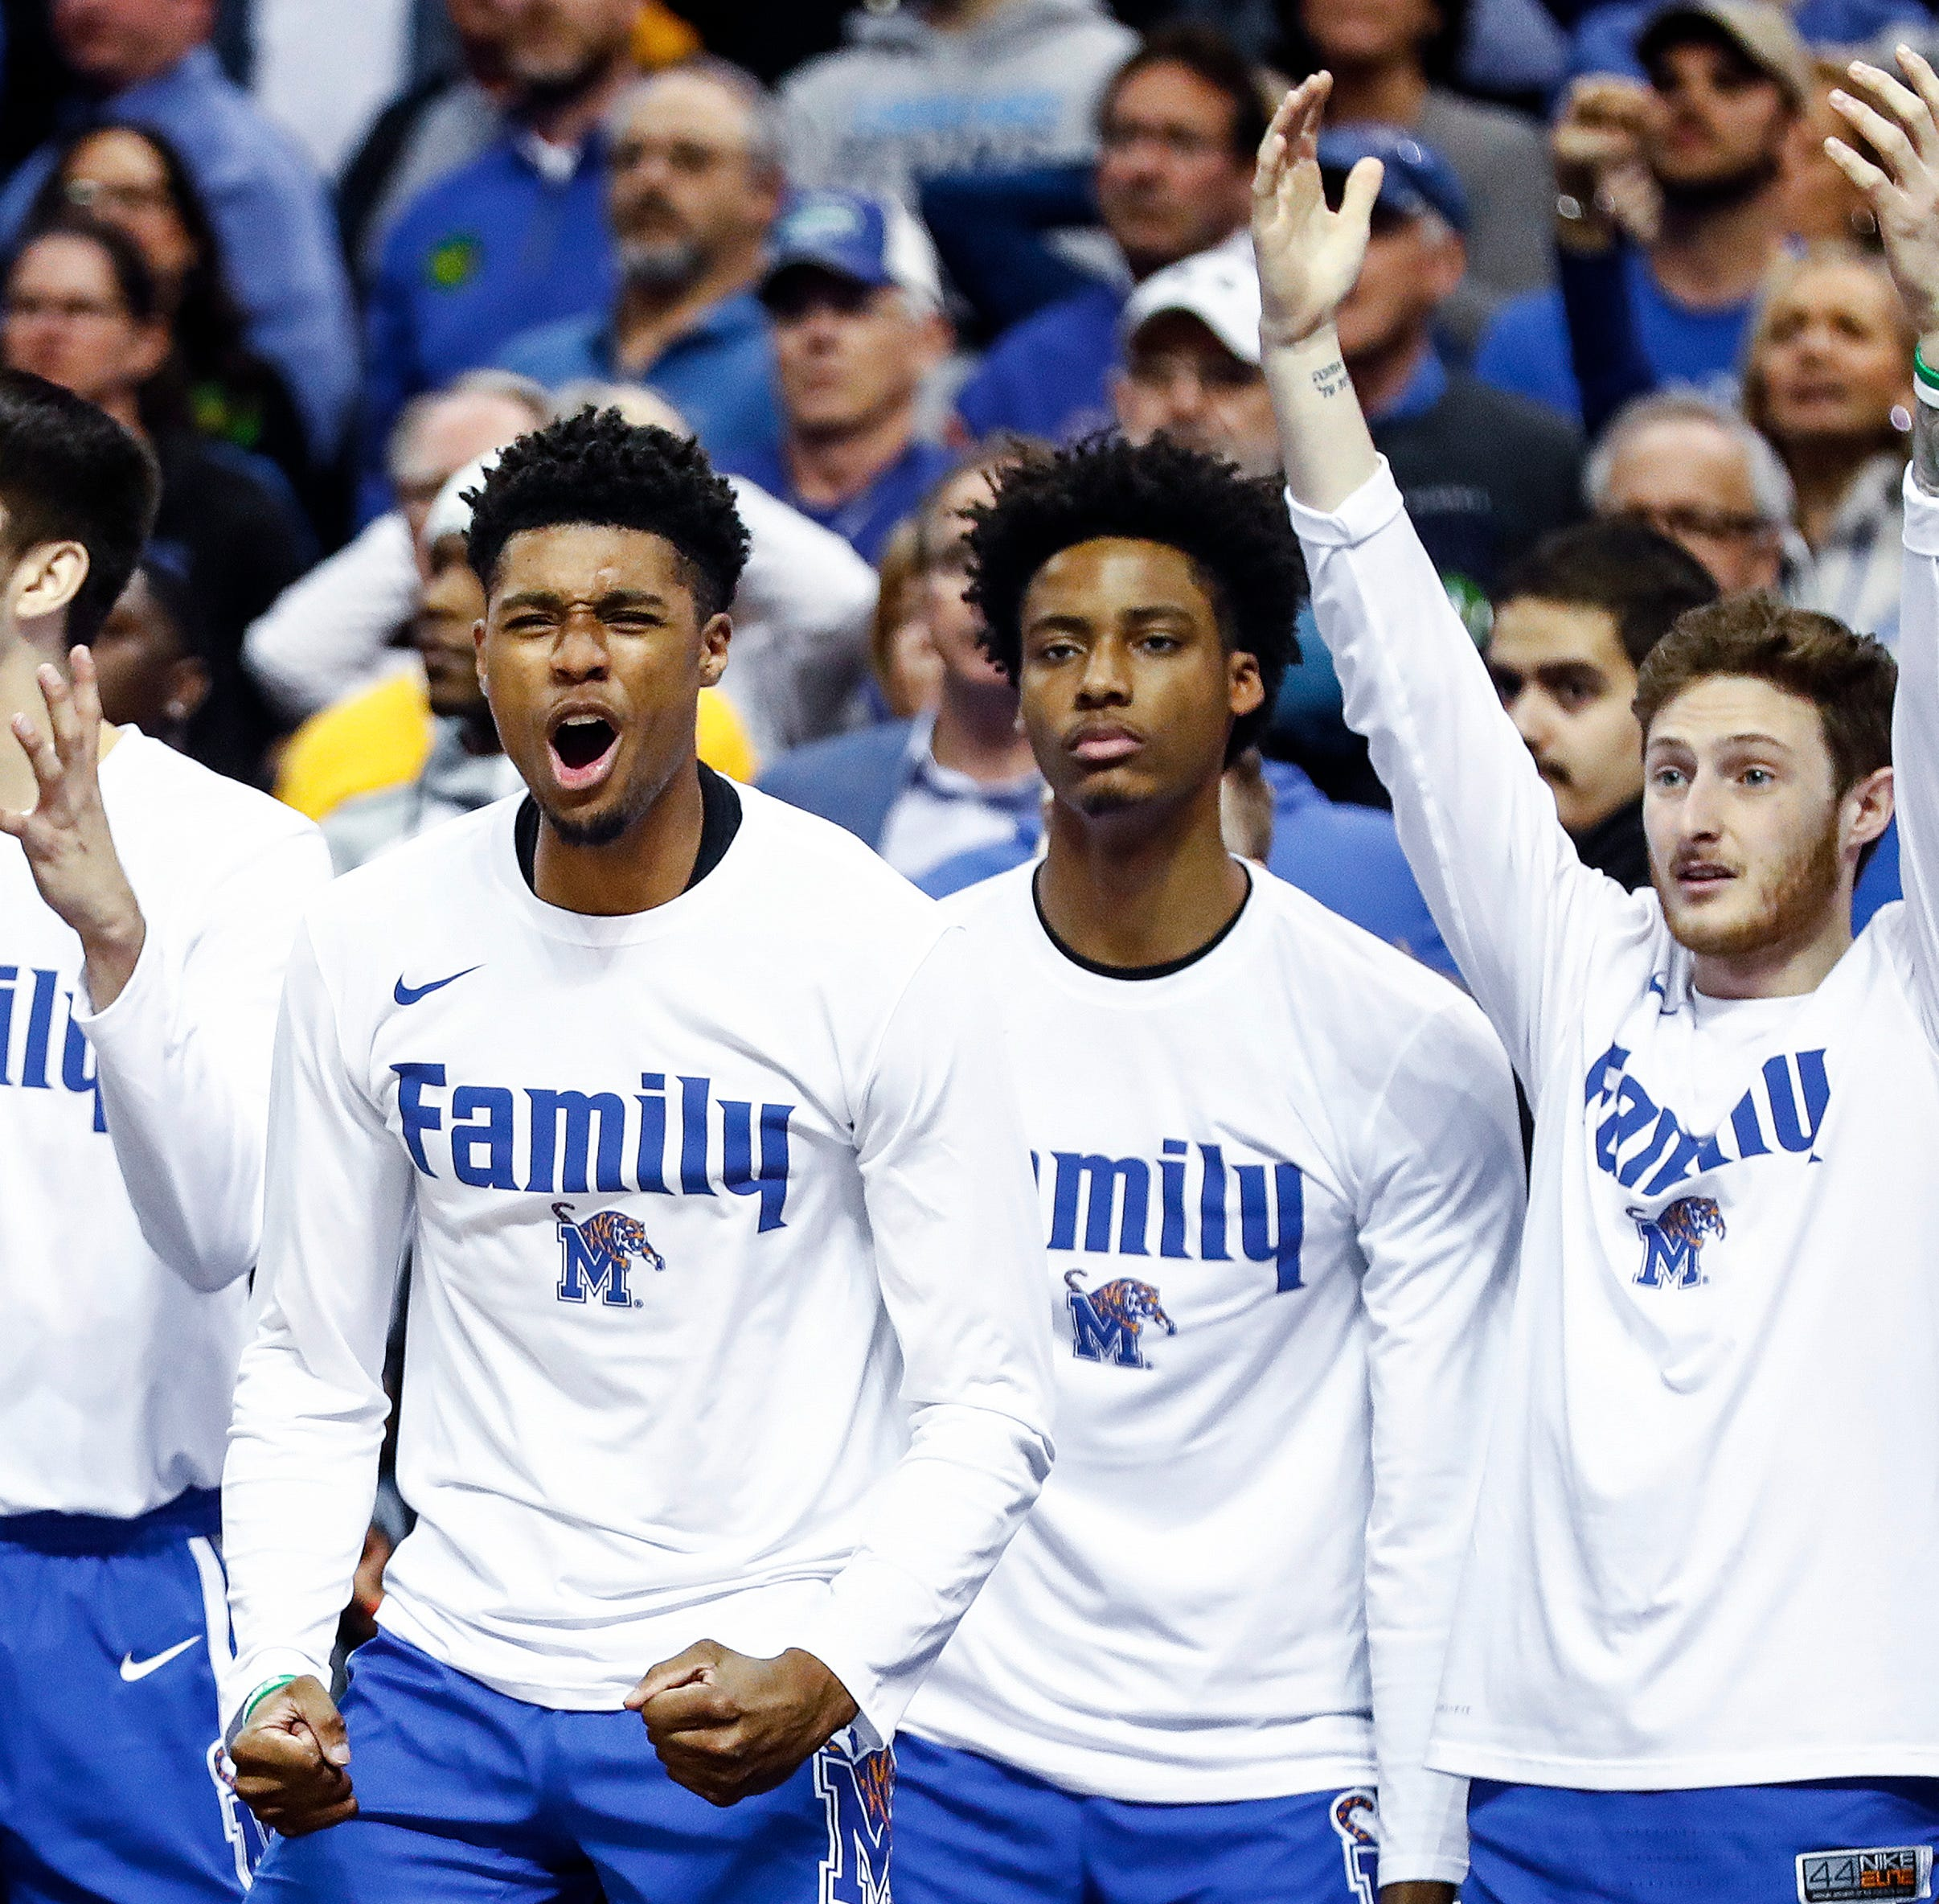 Memphis basketball: Tigers receive NIT bid, will host first-round game